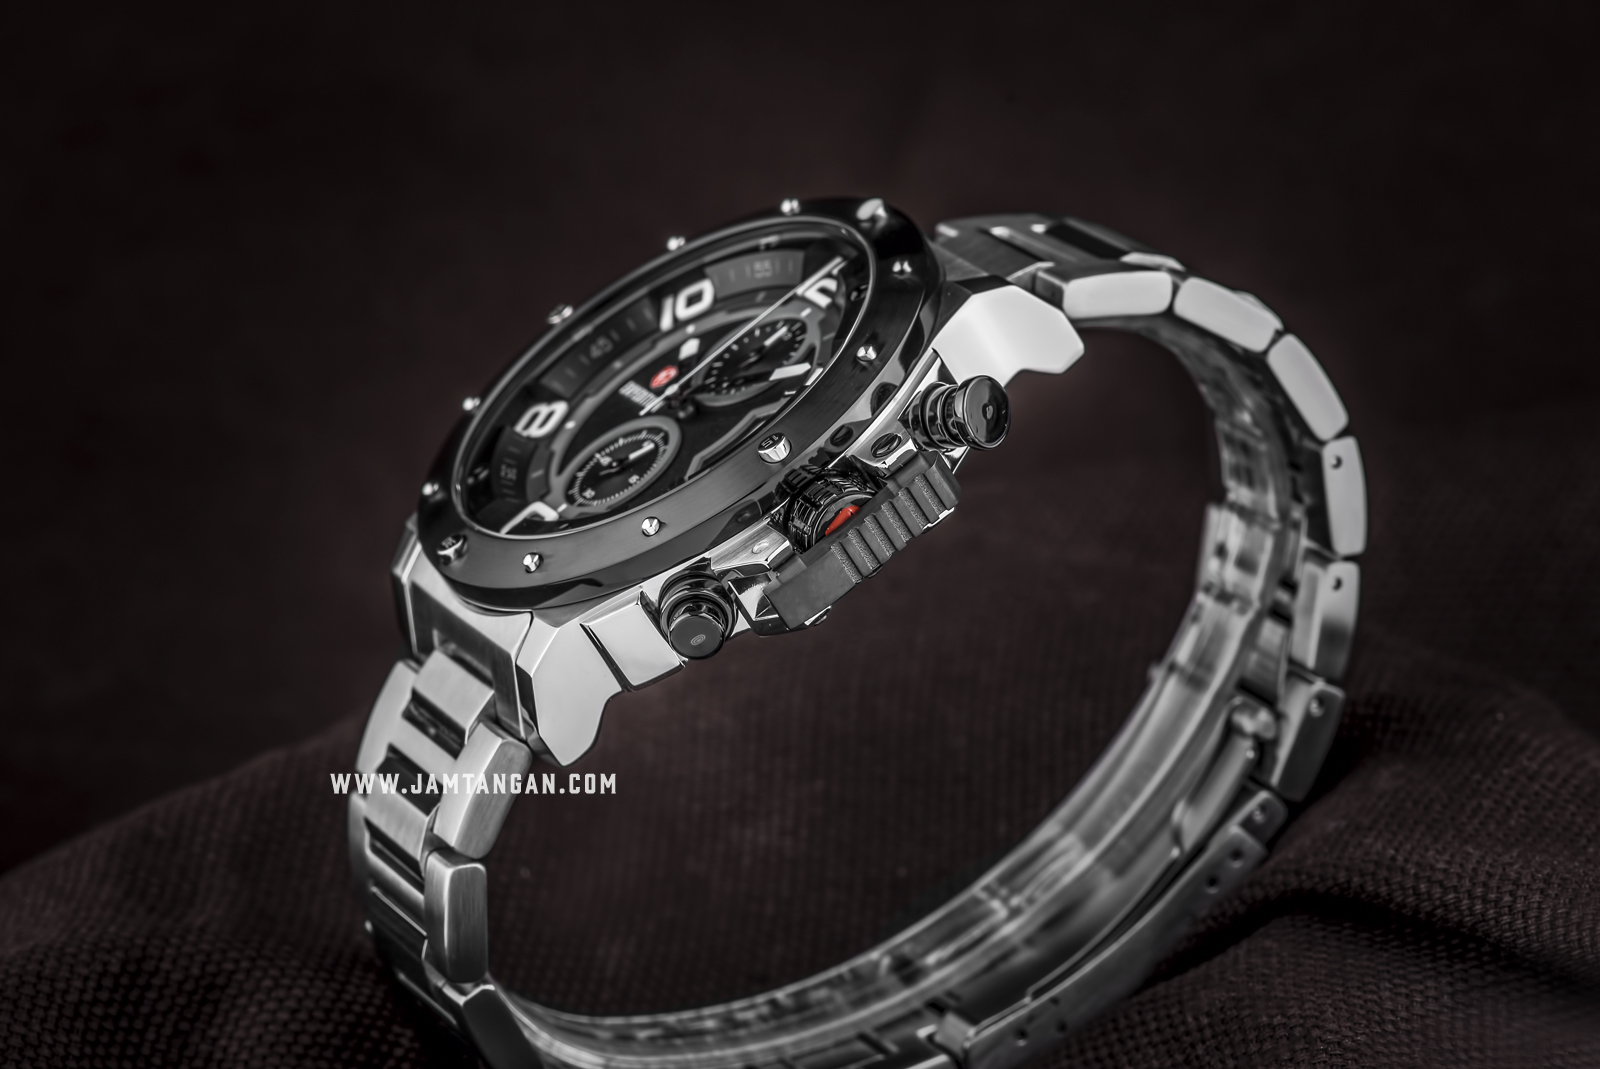 Expedition E 6750 MC BTBBA Chronograph Men Black Dial Stainless Steel Strap Machtwatch